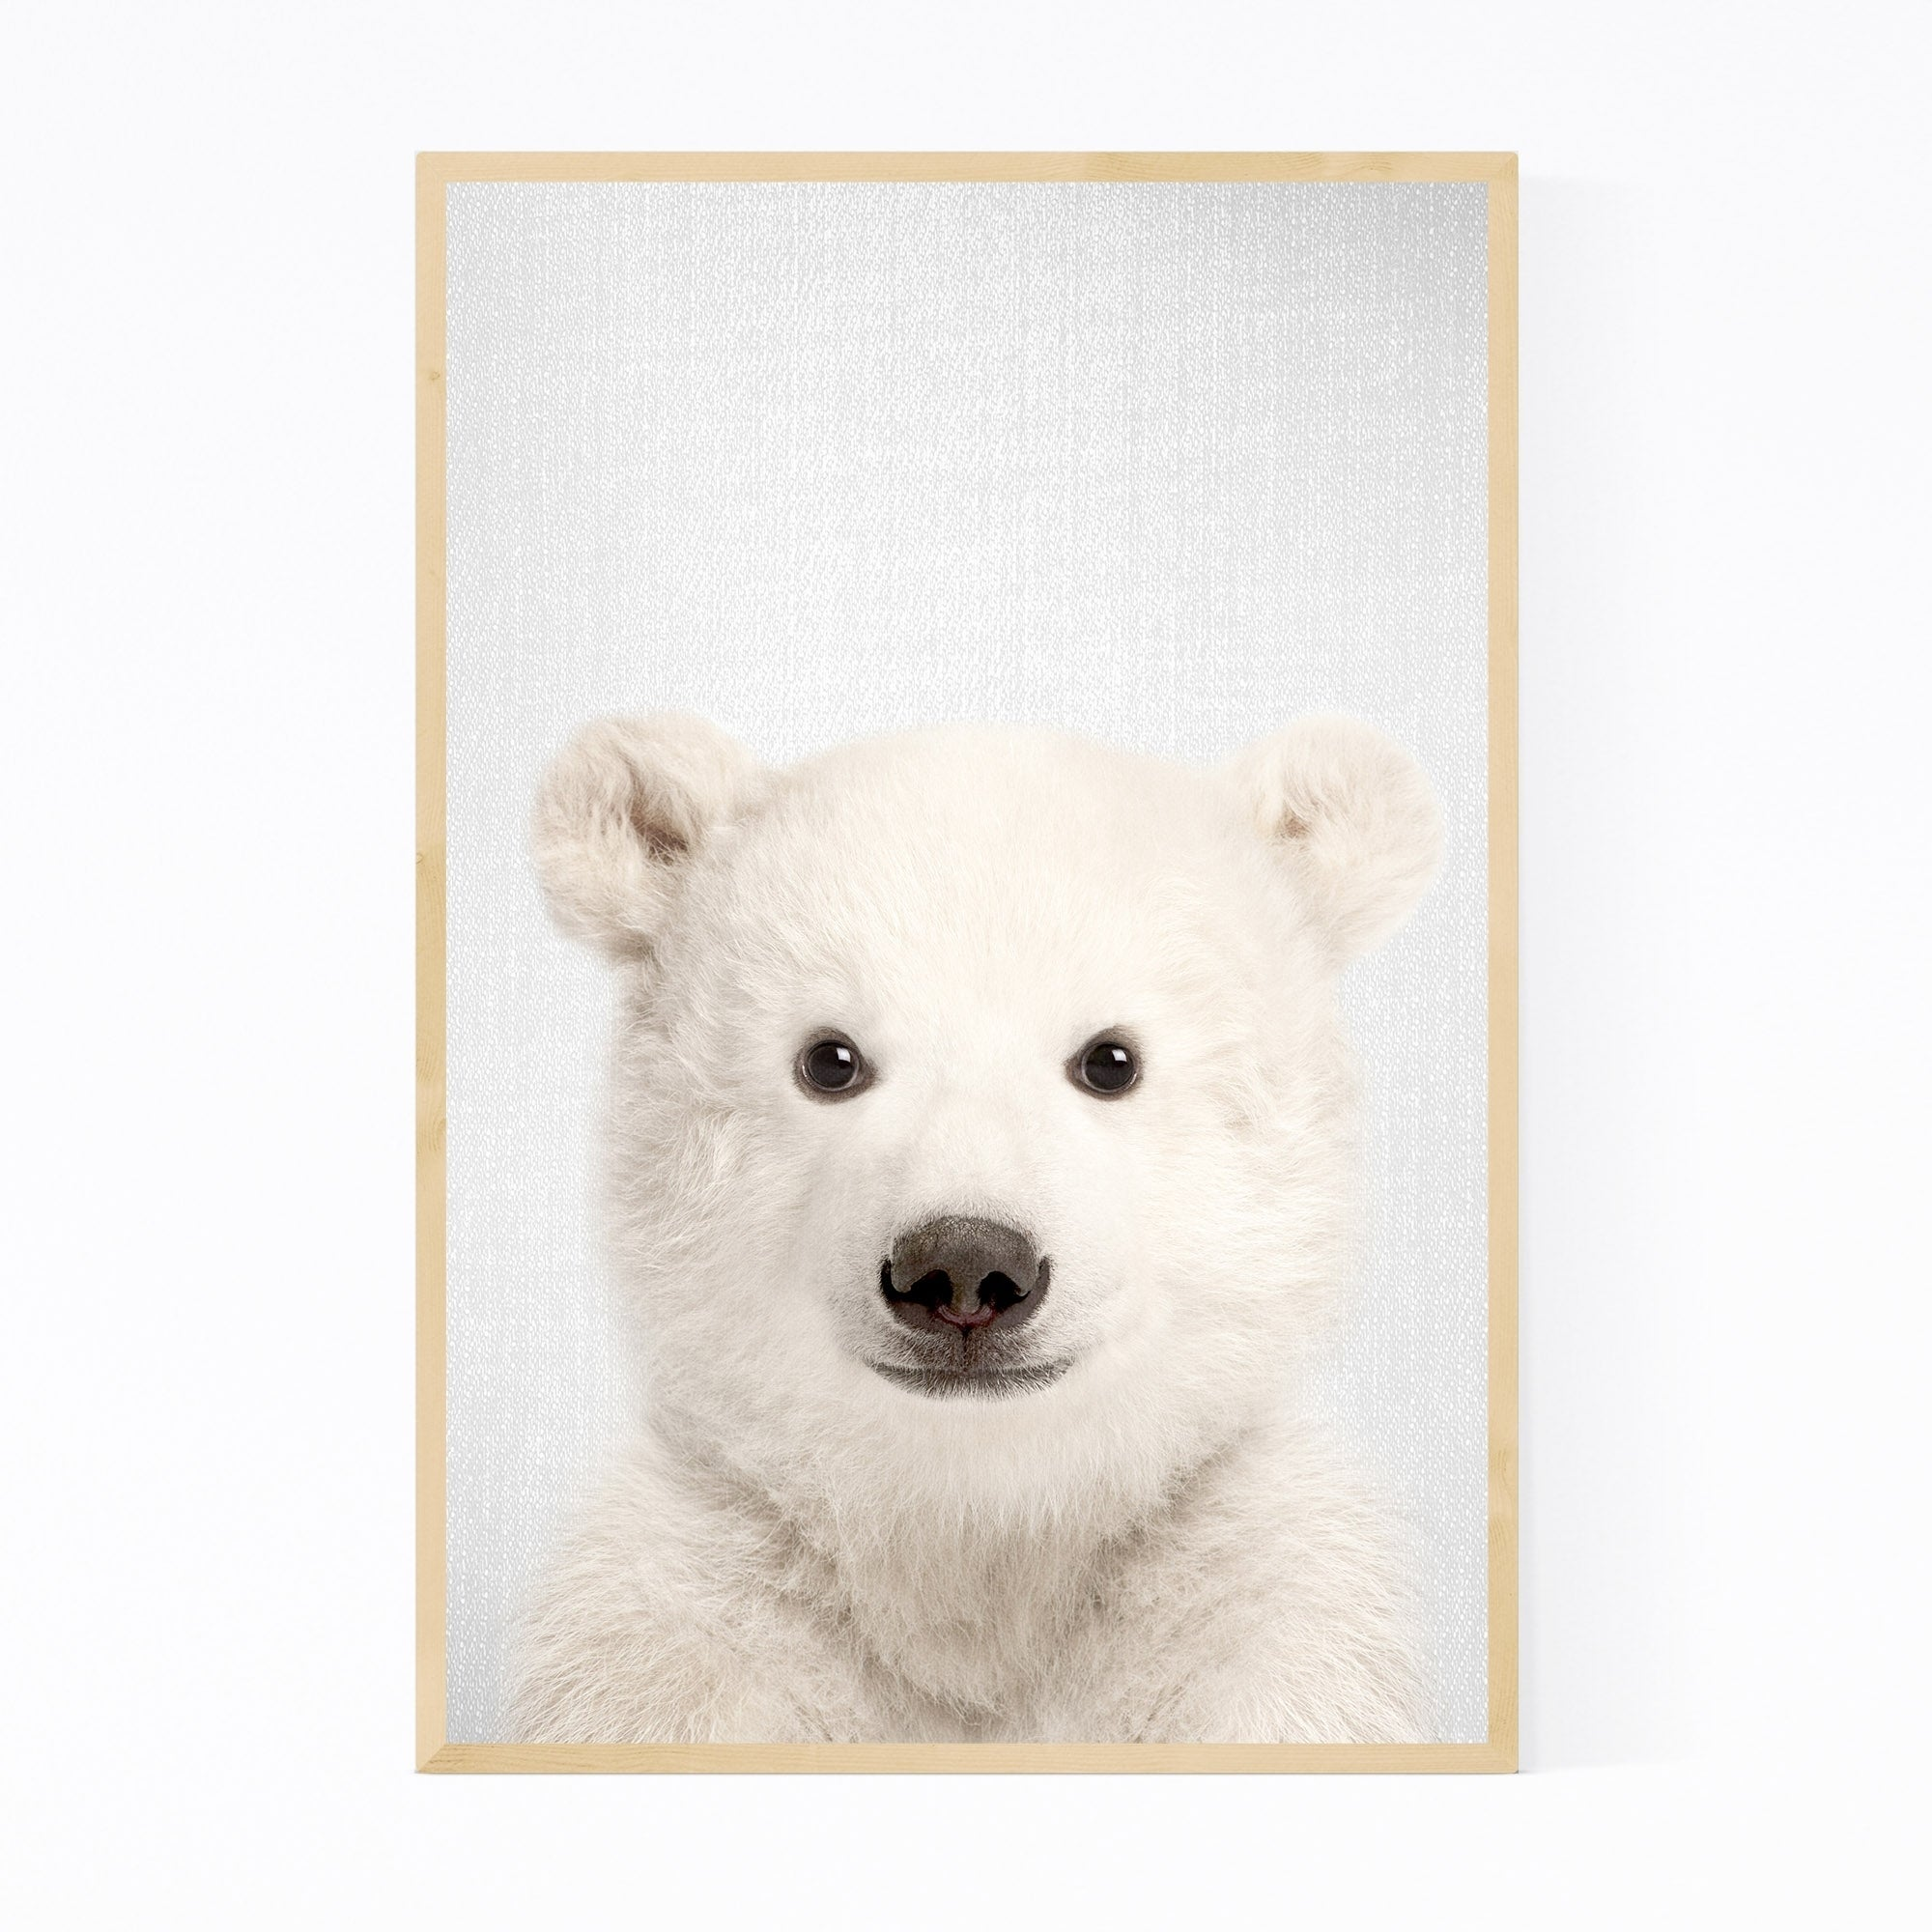 Shop Noir Gallery Baby Polar Bear Peekaboo Animal Framed Art Print